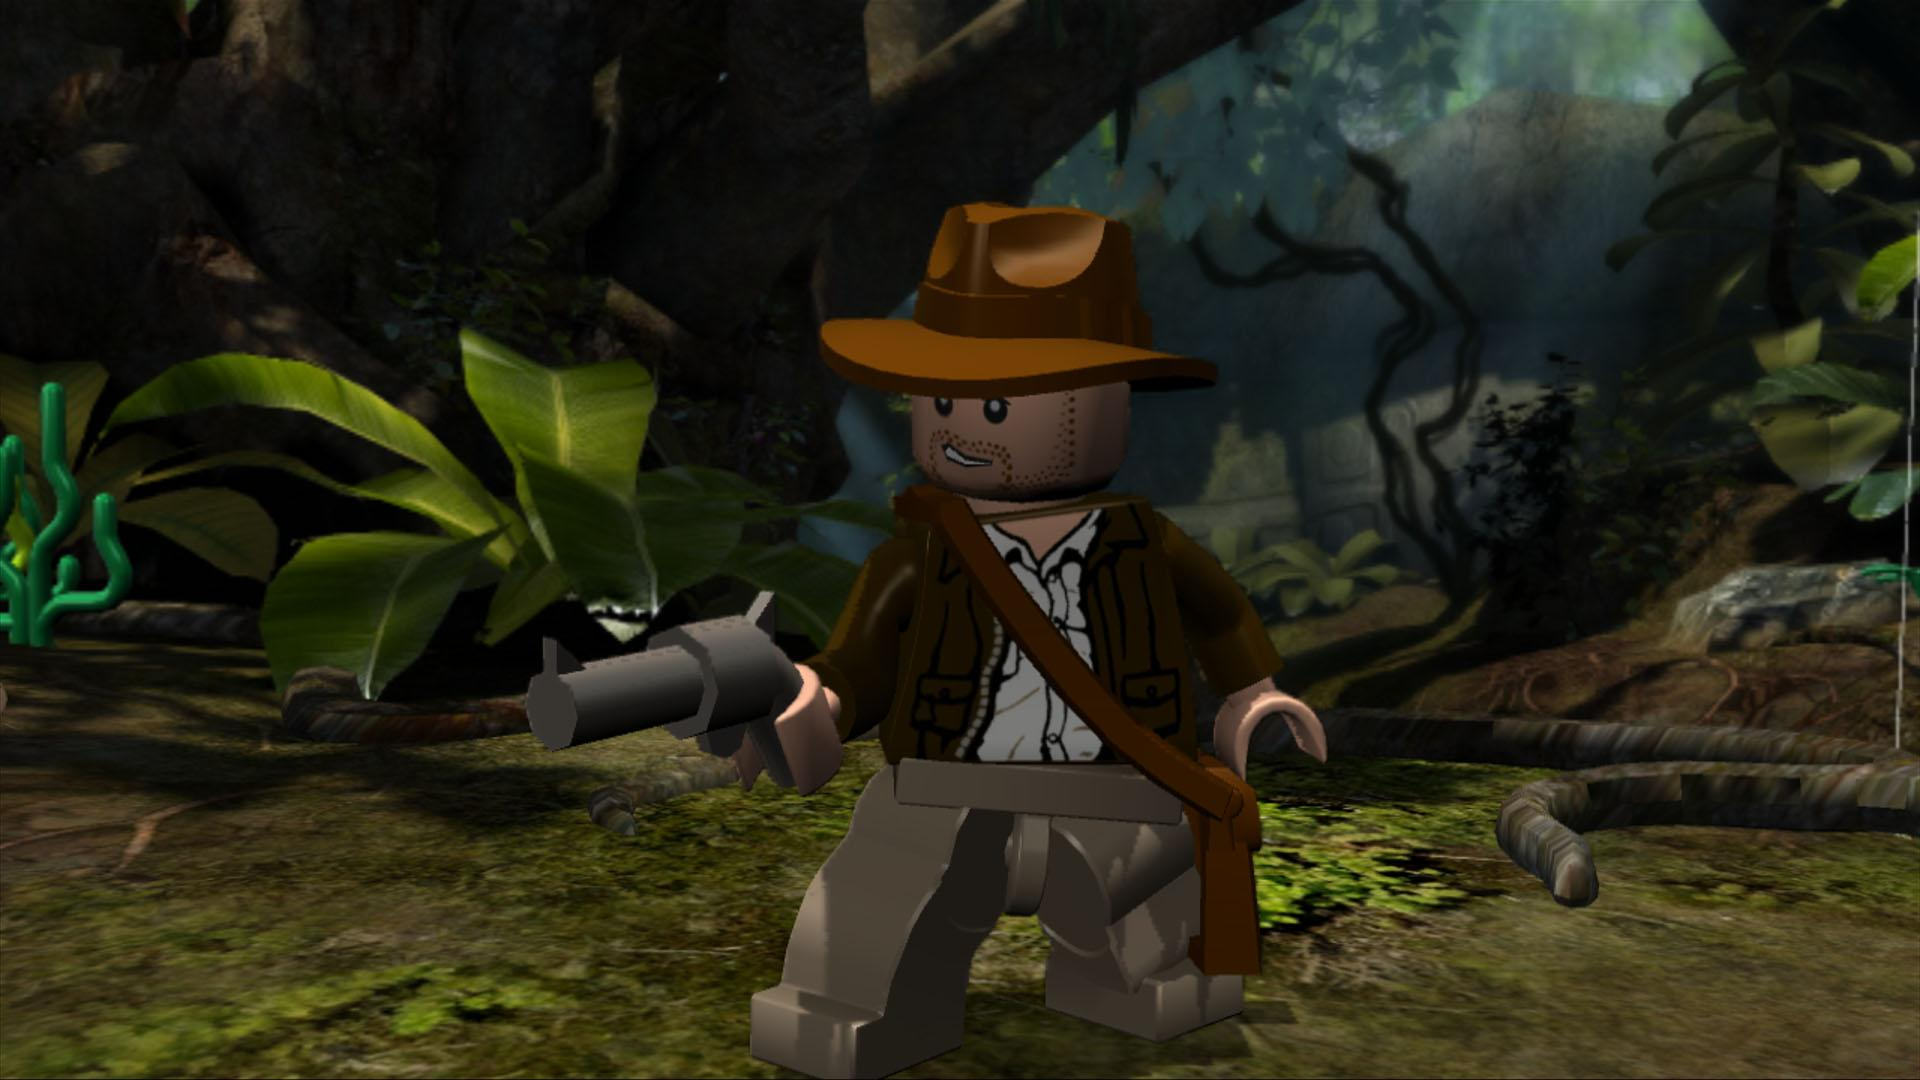 Lego Indiana Jones The Original Adventures Review Gamesradar